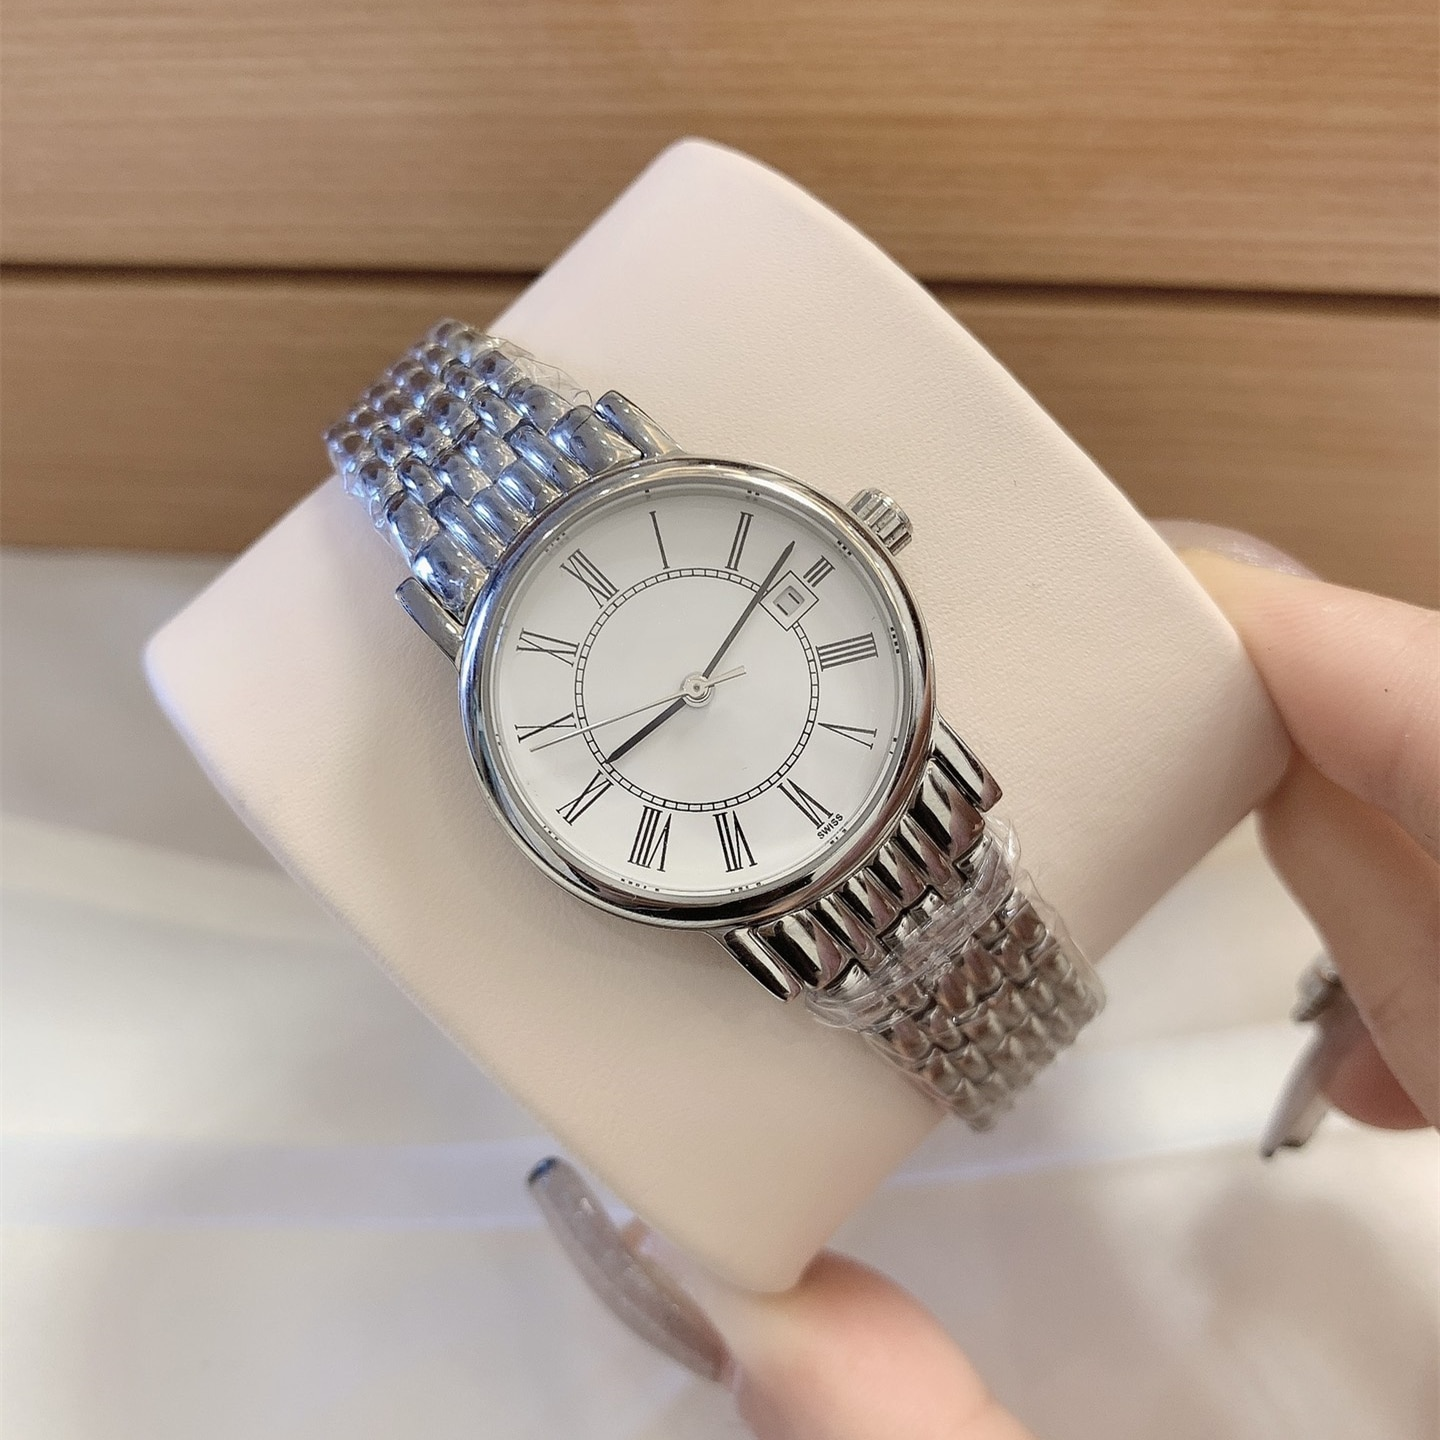 Ladies Stainless Steel Watch Watch Fully Automatic Mechanical Watch Exquisite Sapphire Stainless Steel Waterproof Watch